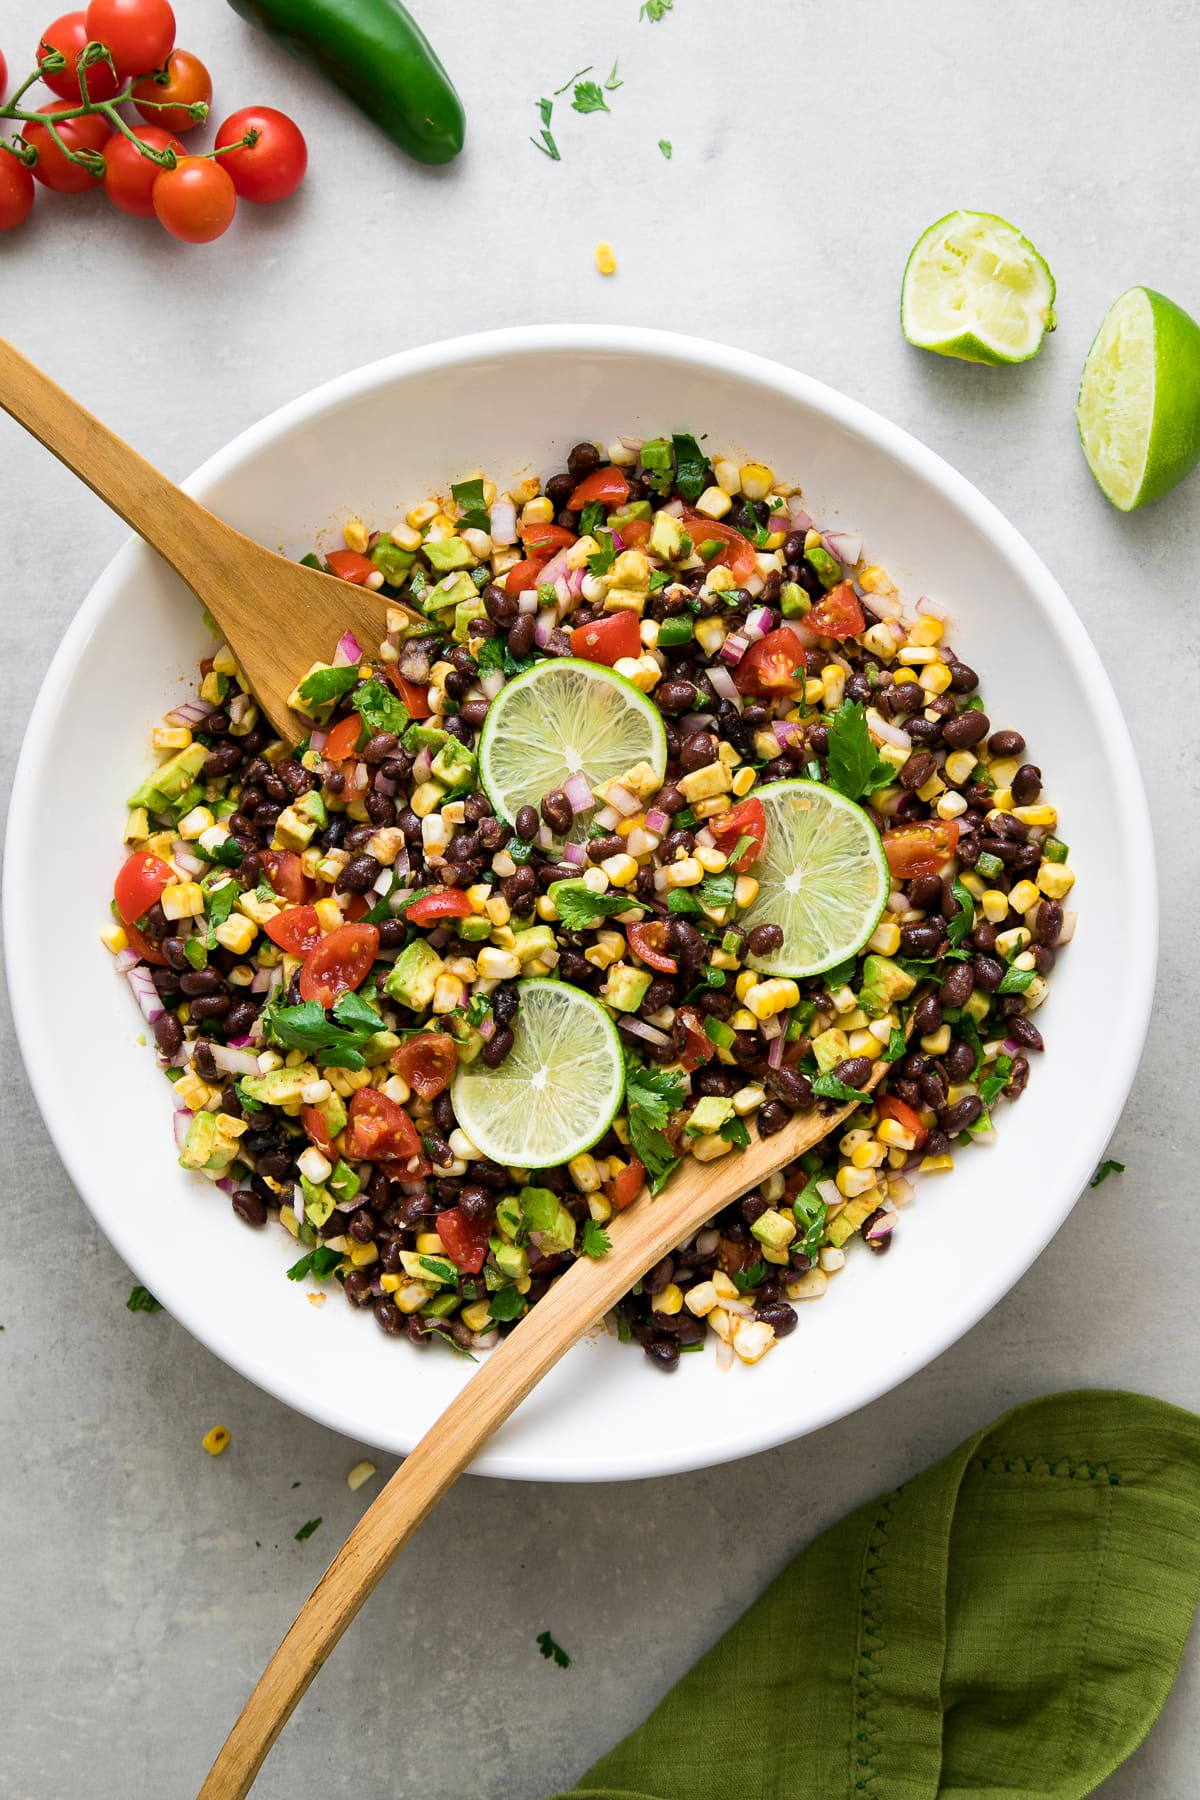 top down view of freshly mixed black bean corn salad in a large white bowl with wooden salad utensils.